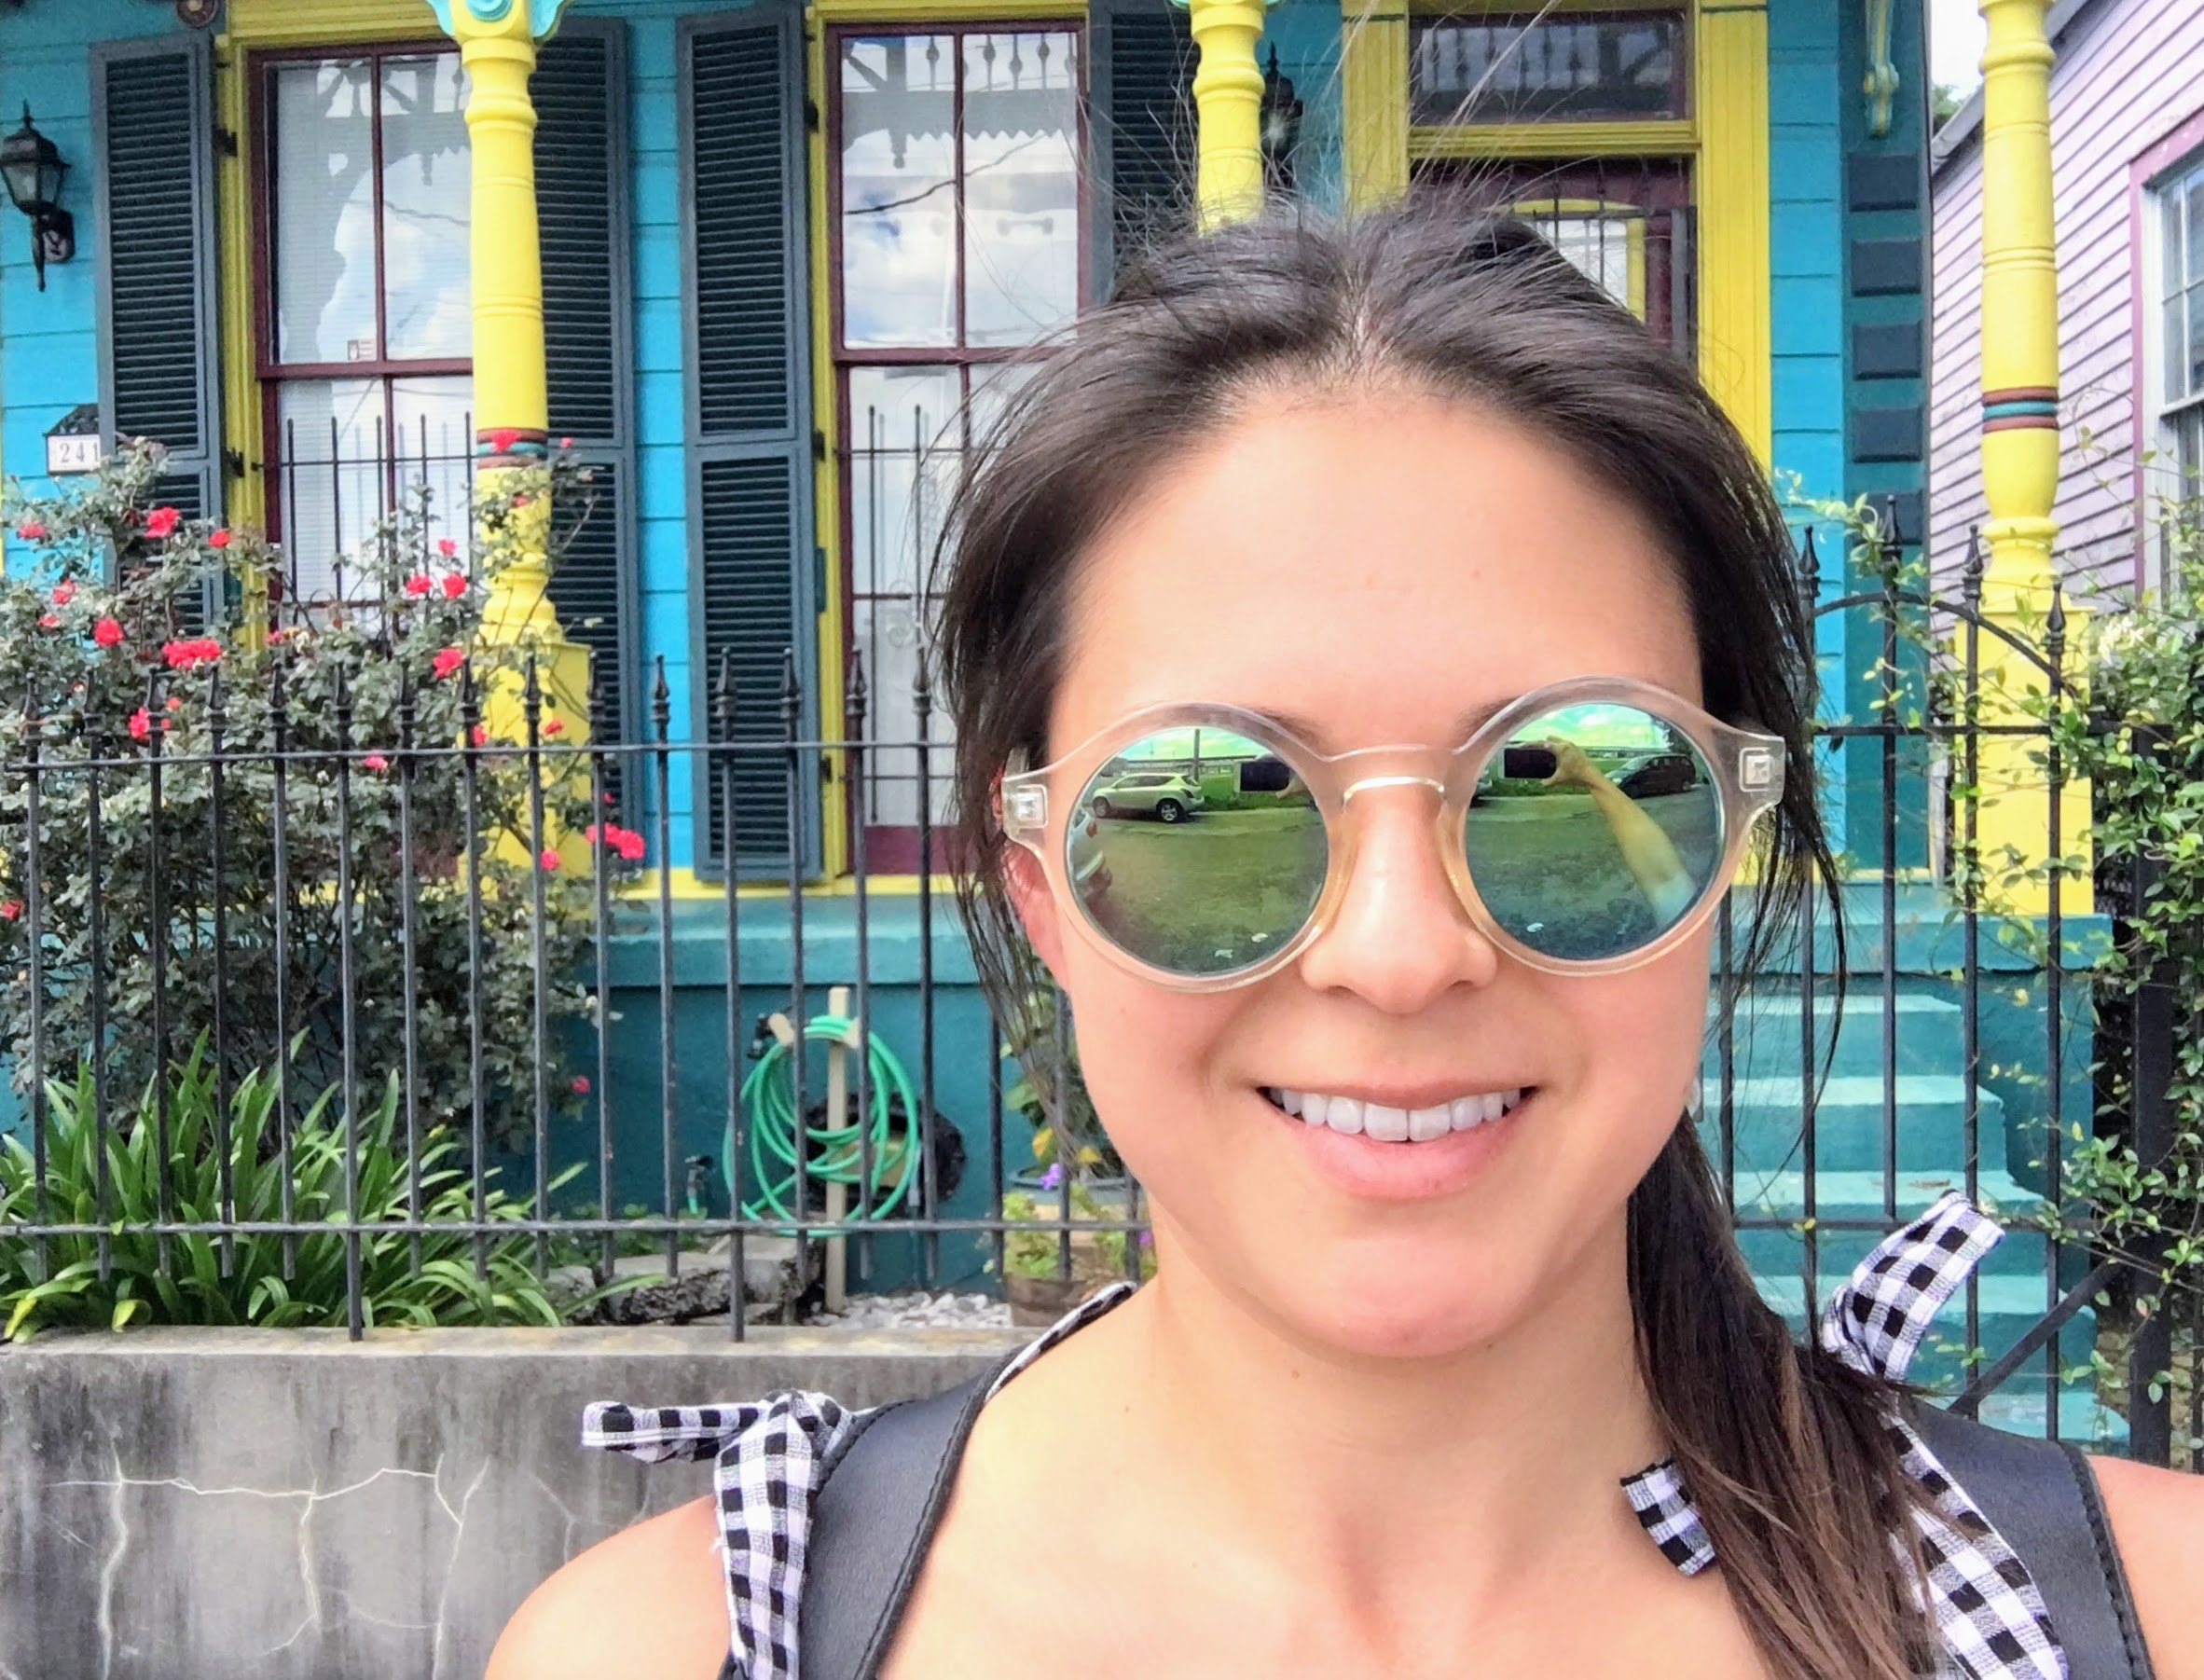 French Quarter selfies happen when traveling solo in New Orleans.